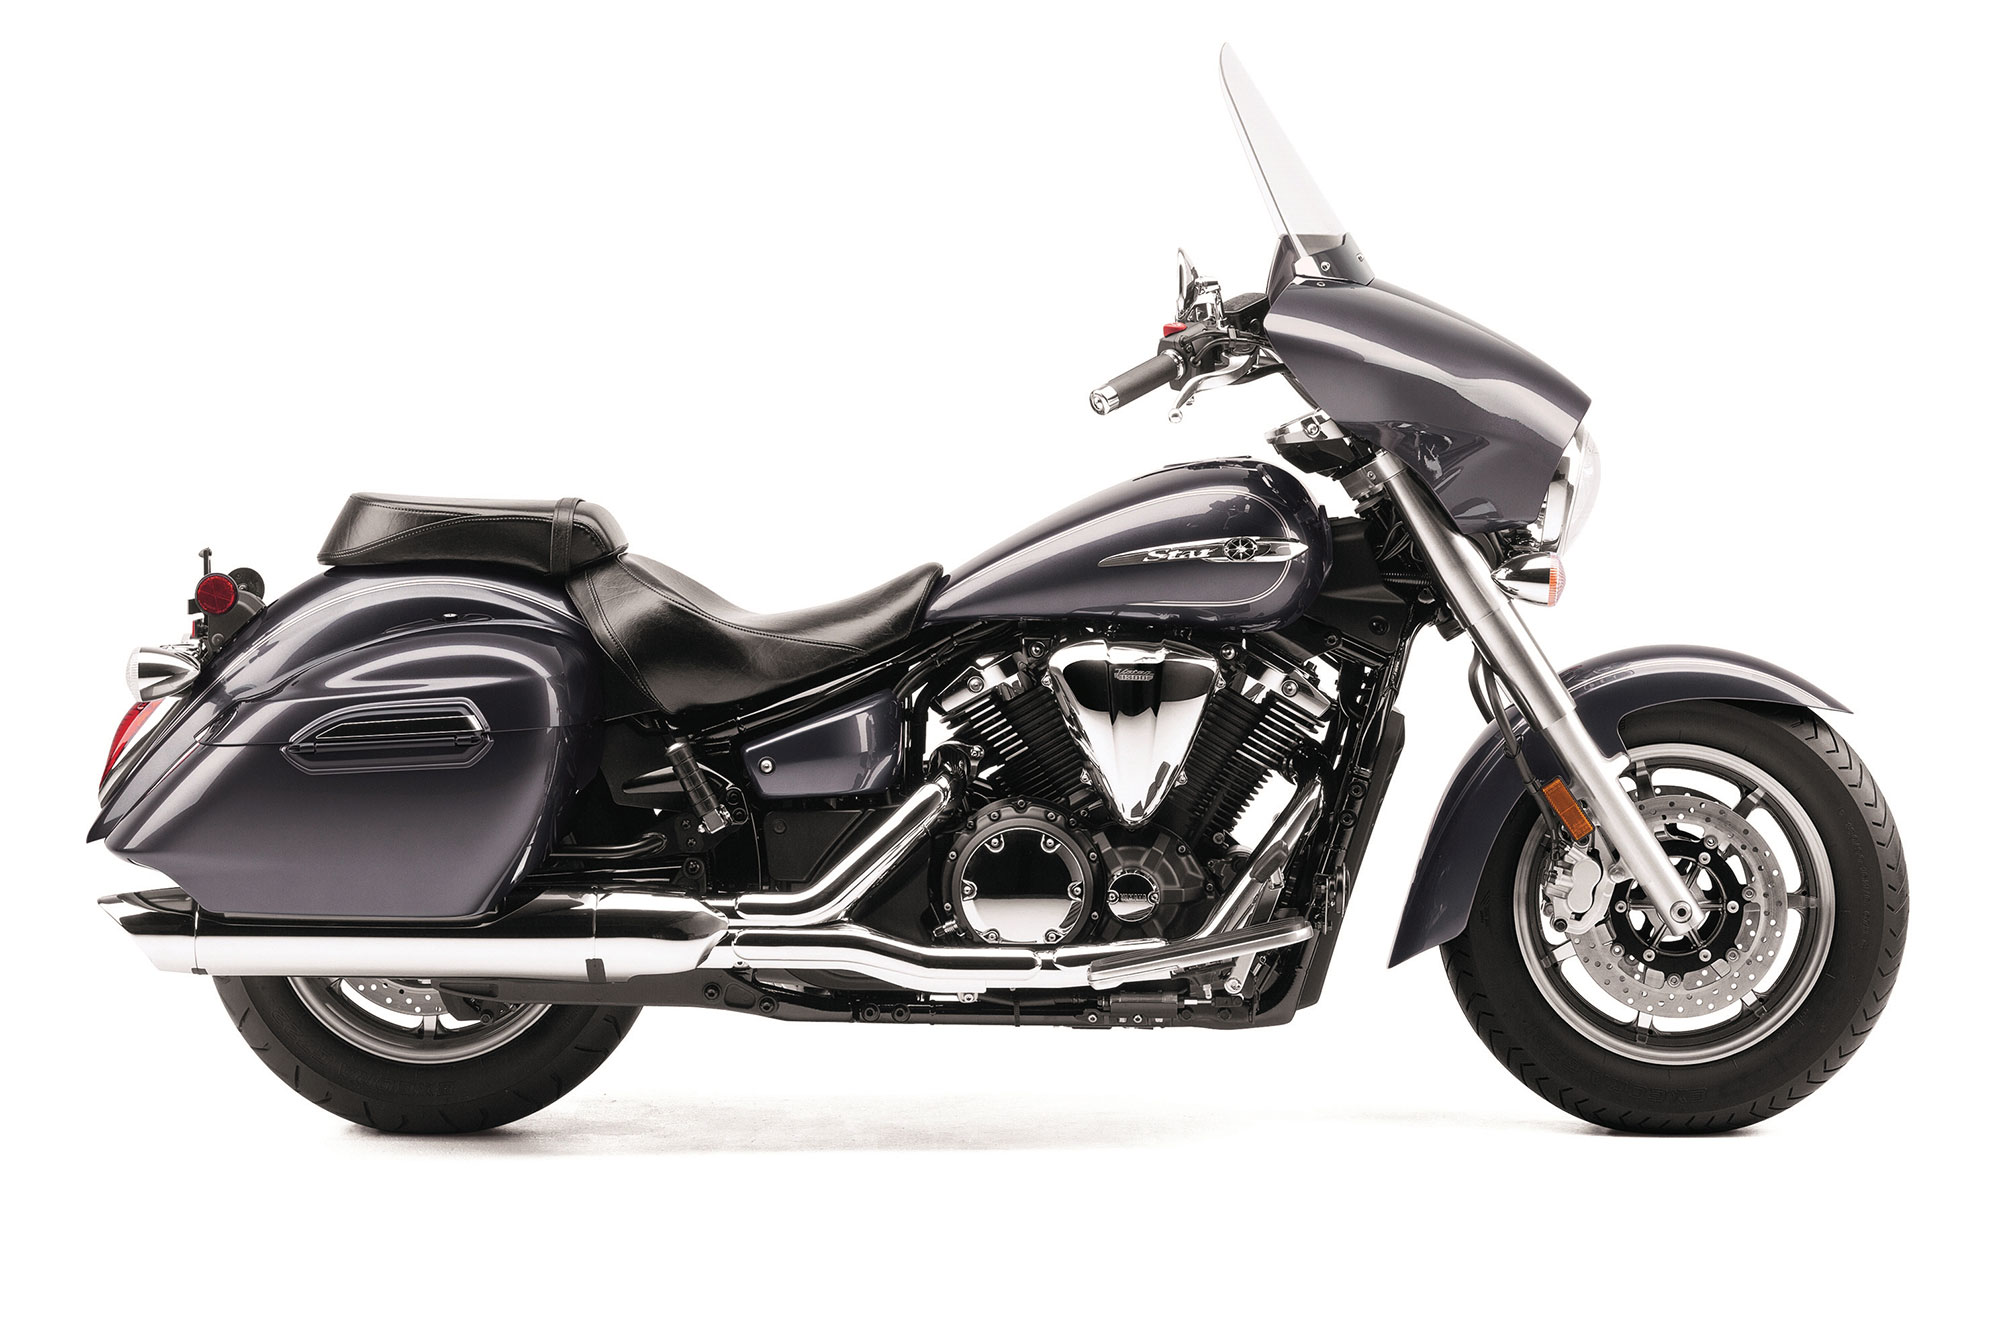 2014 yamaha v star 1300 deluxe review for Yamaha 1300 motorcycle